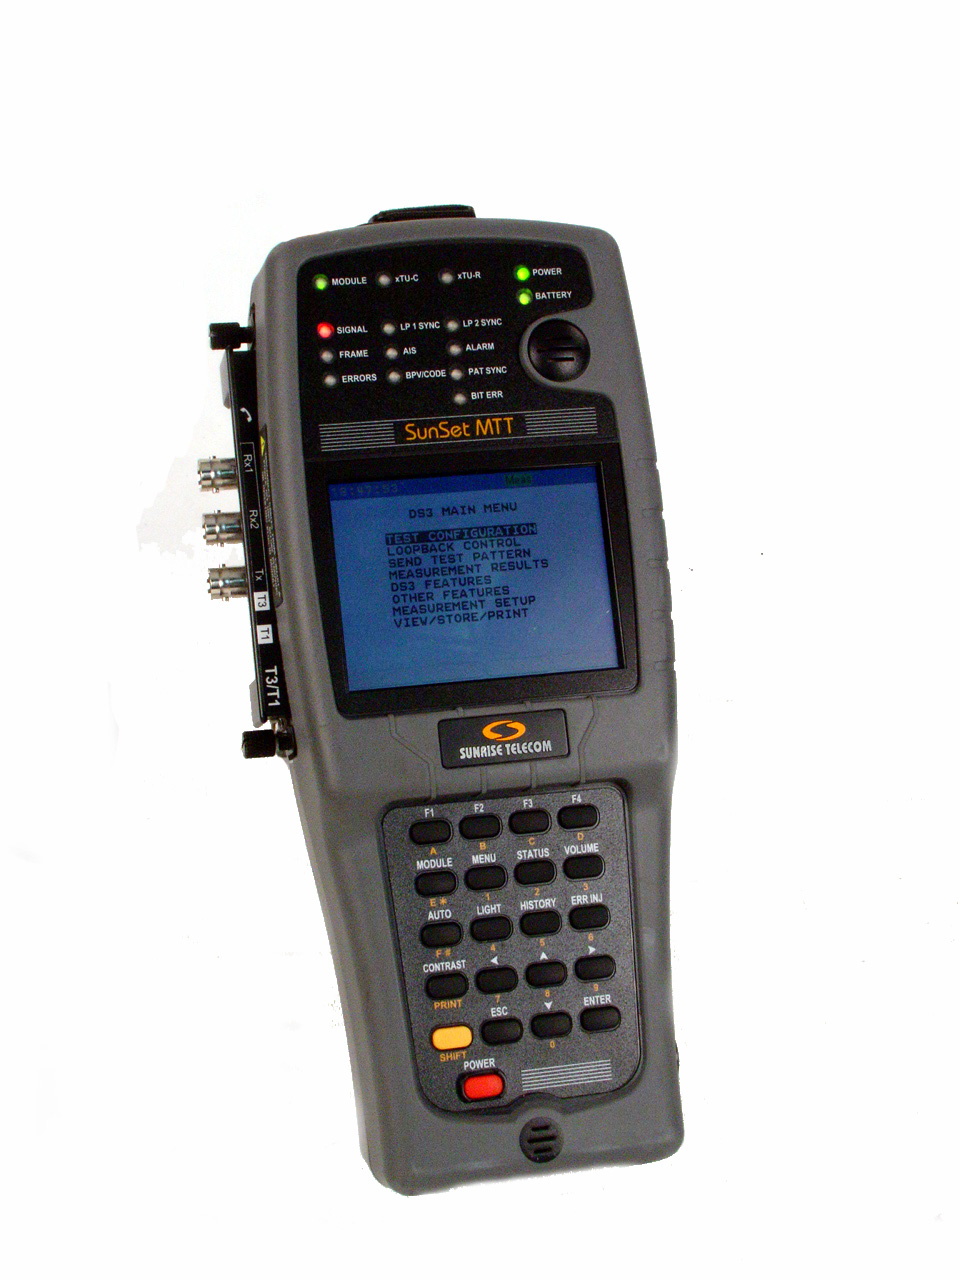 Sunrise Telecom MTT for sale